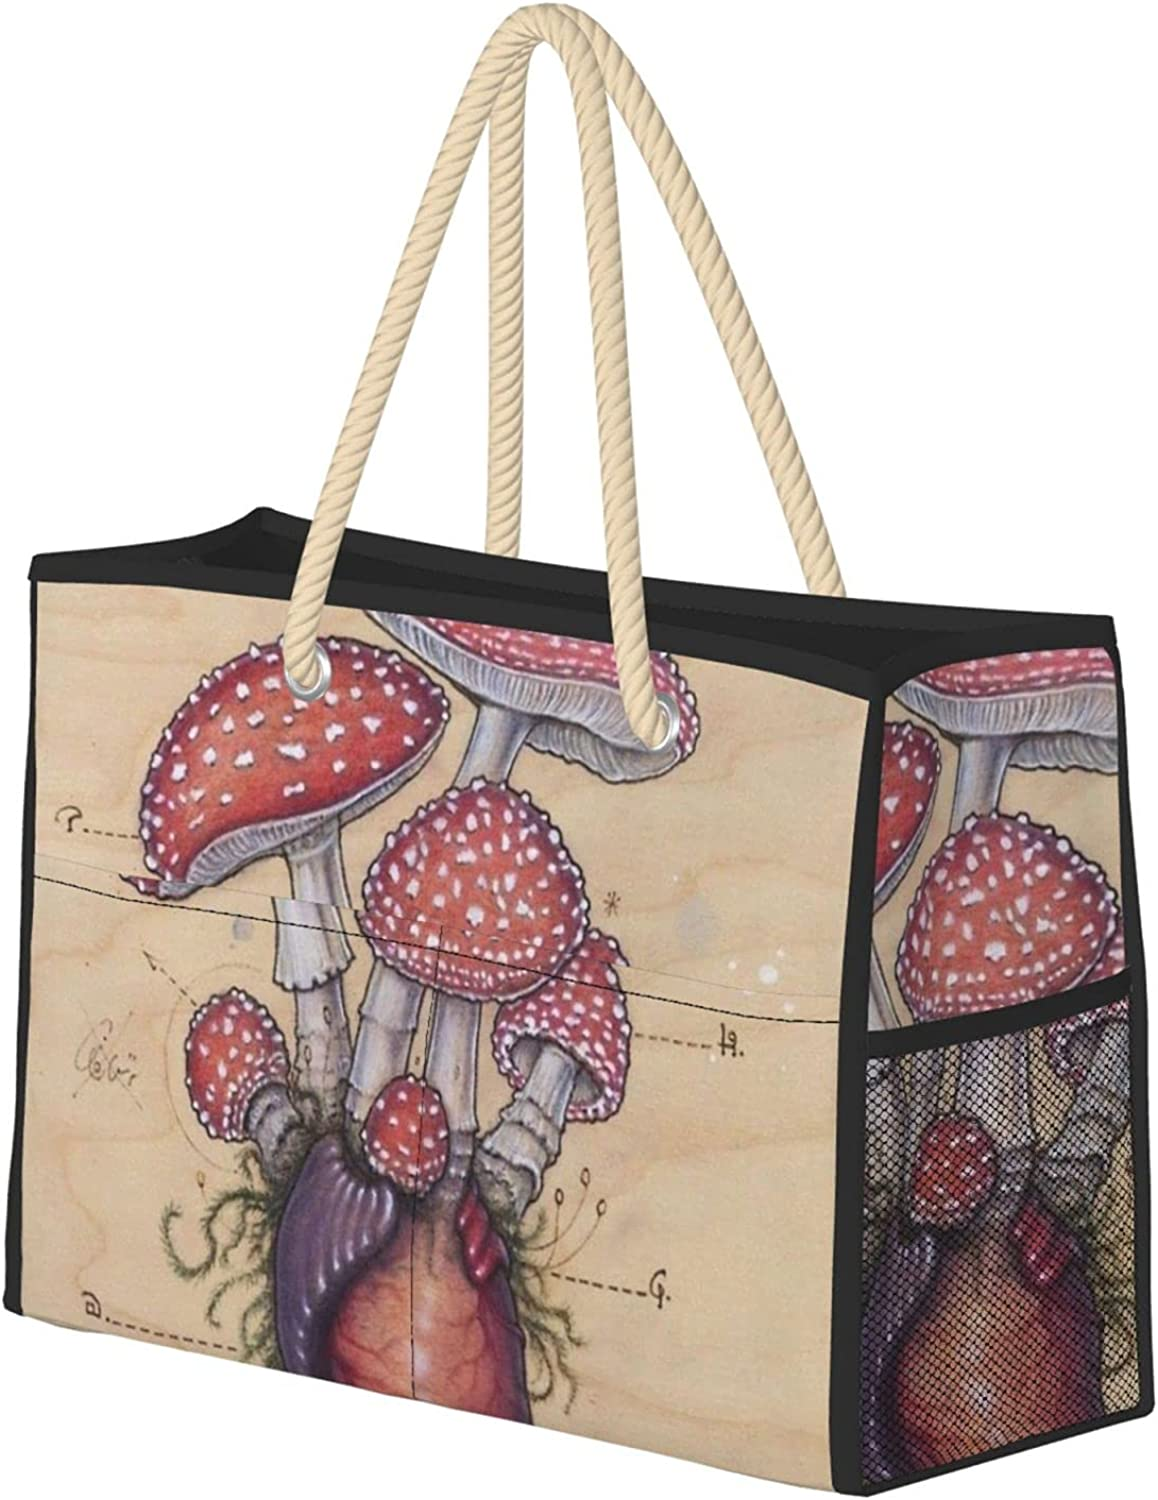 Large Ranking TOP9 Beach Bag Travel for with outlet Pool Tote - Women